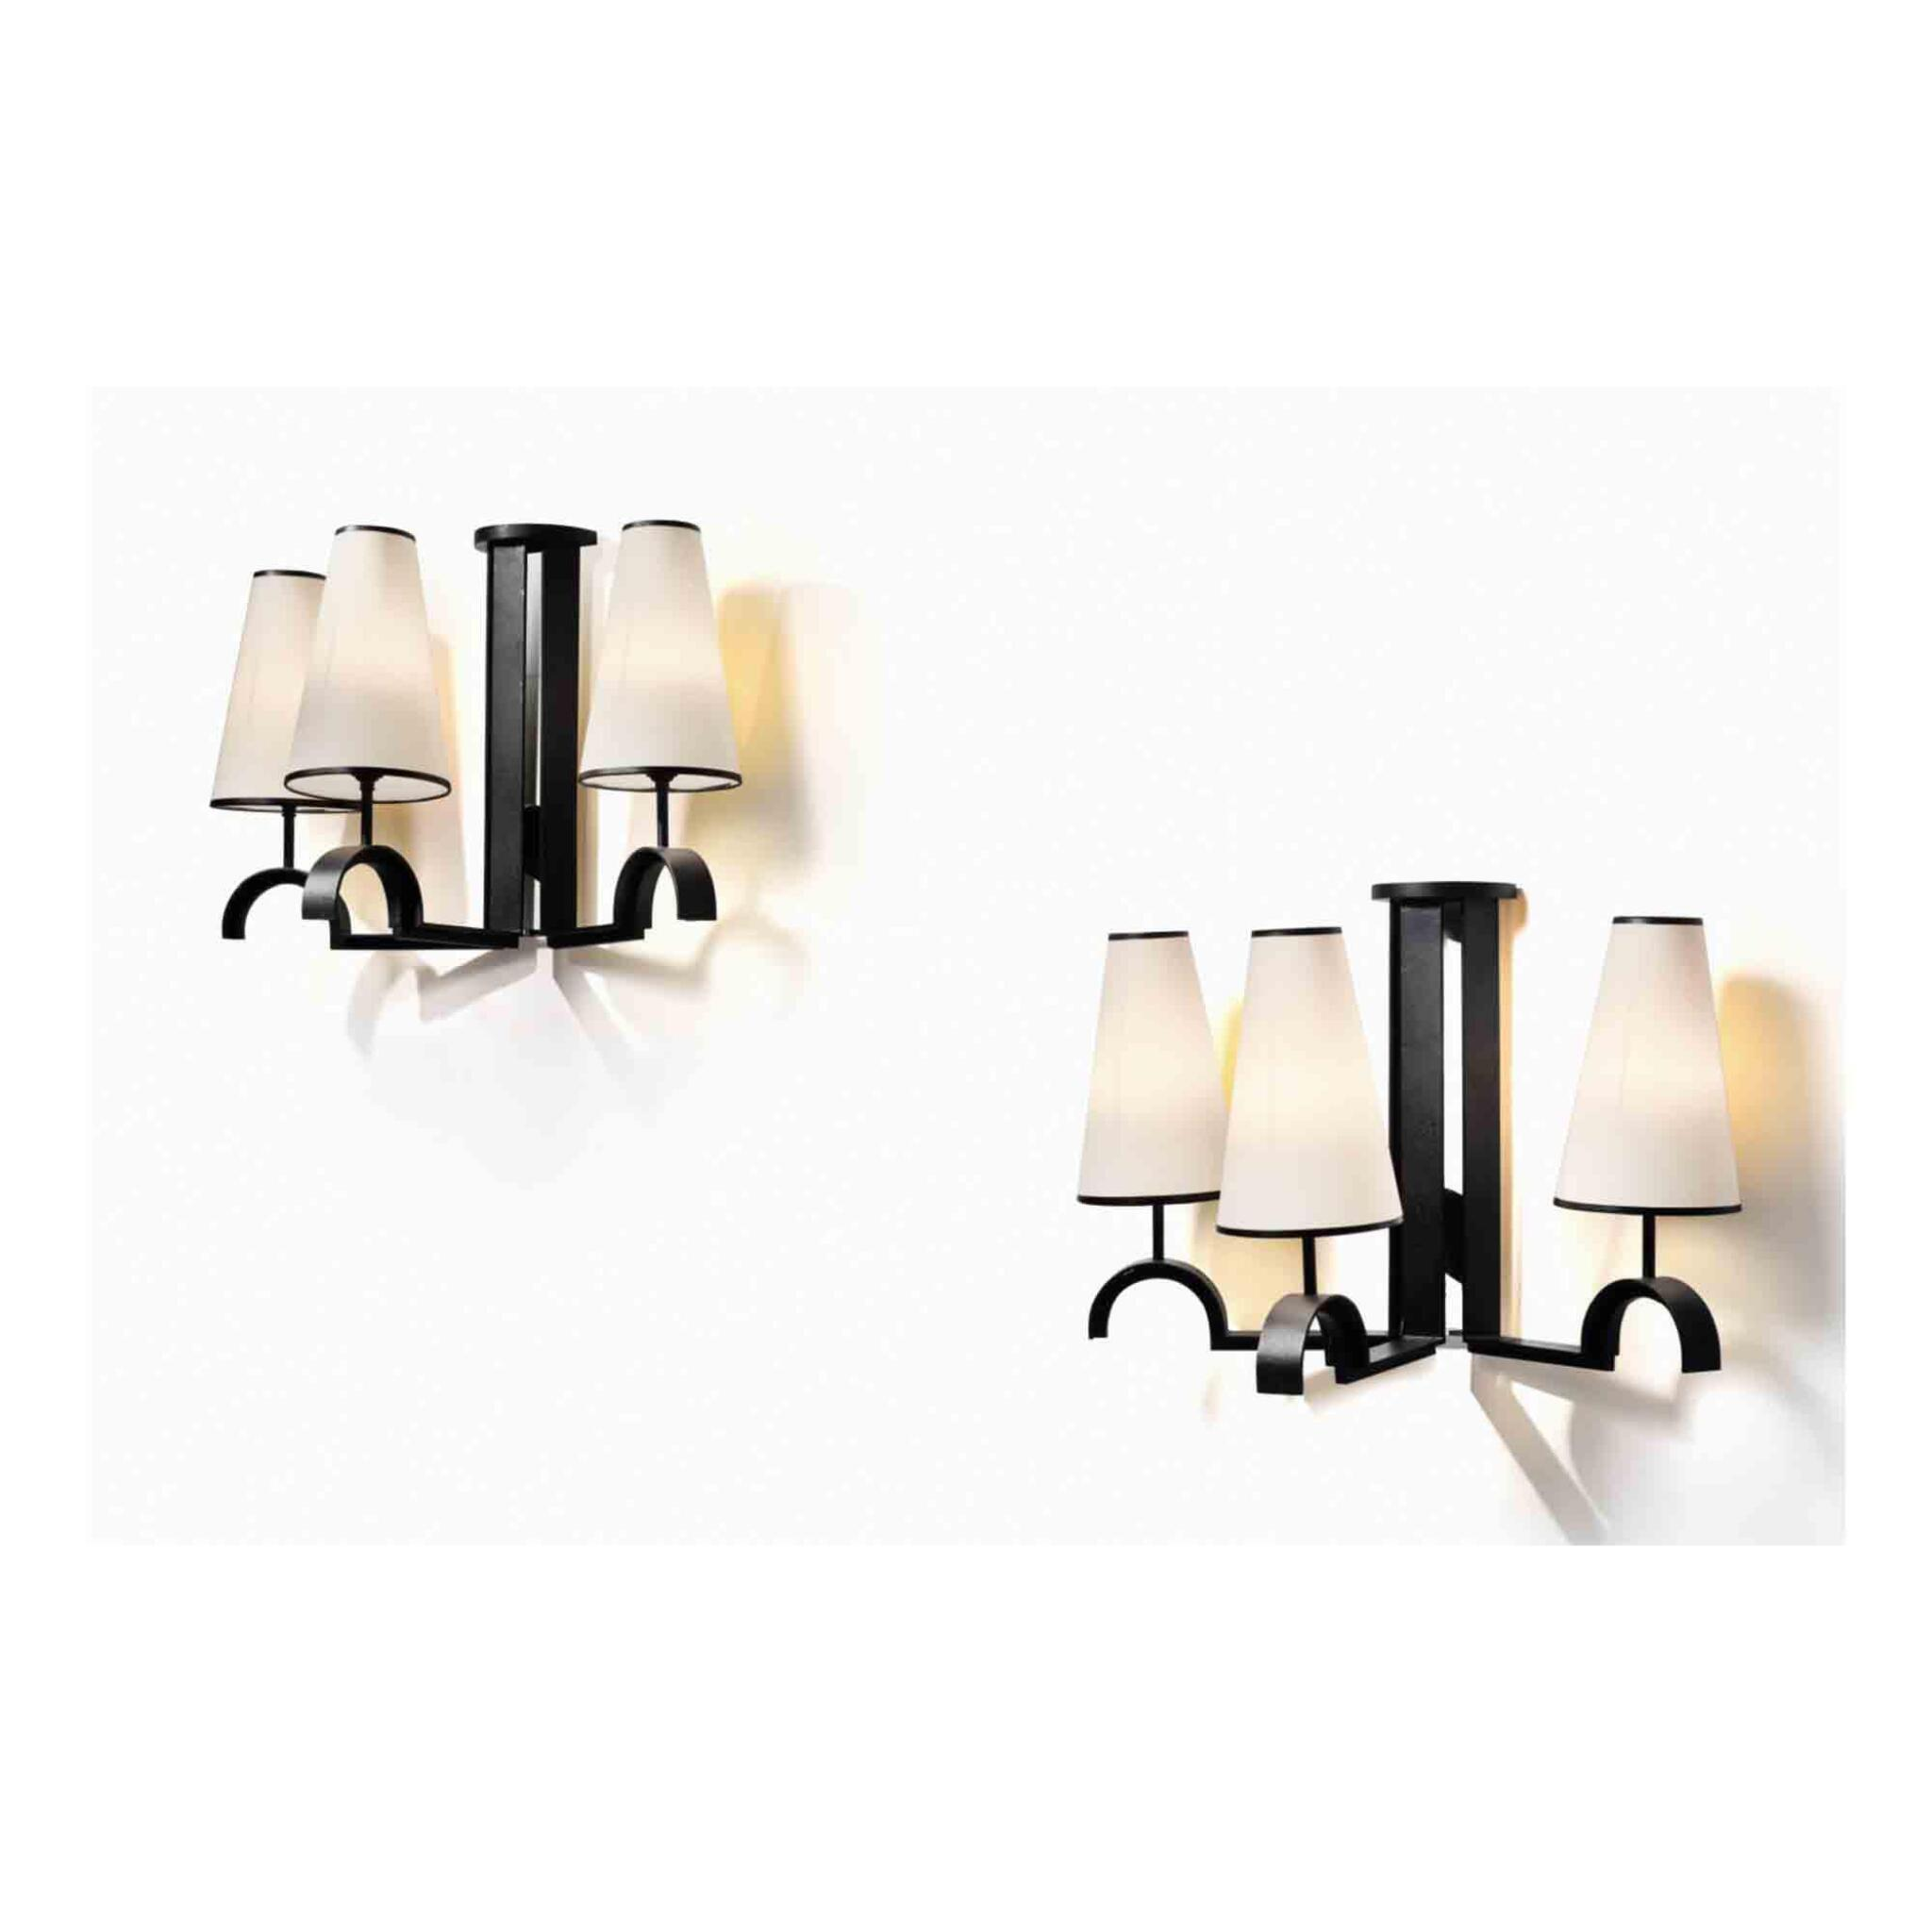 View full screen - View 1 of Lot 96. Pair of Sconces.